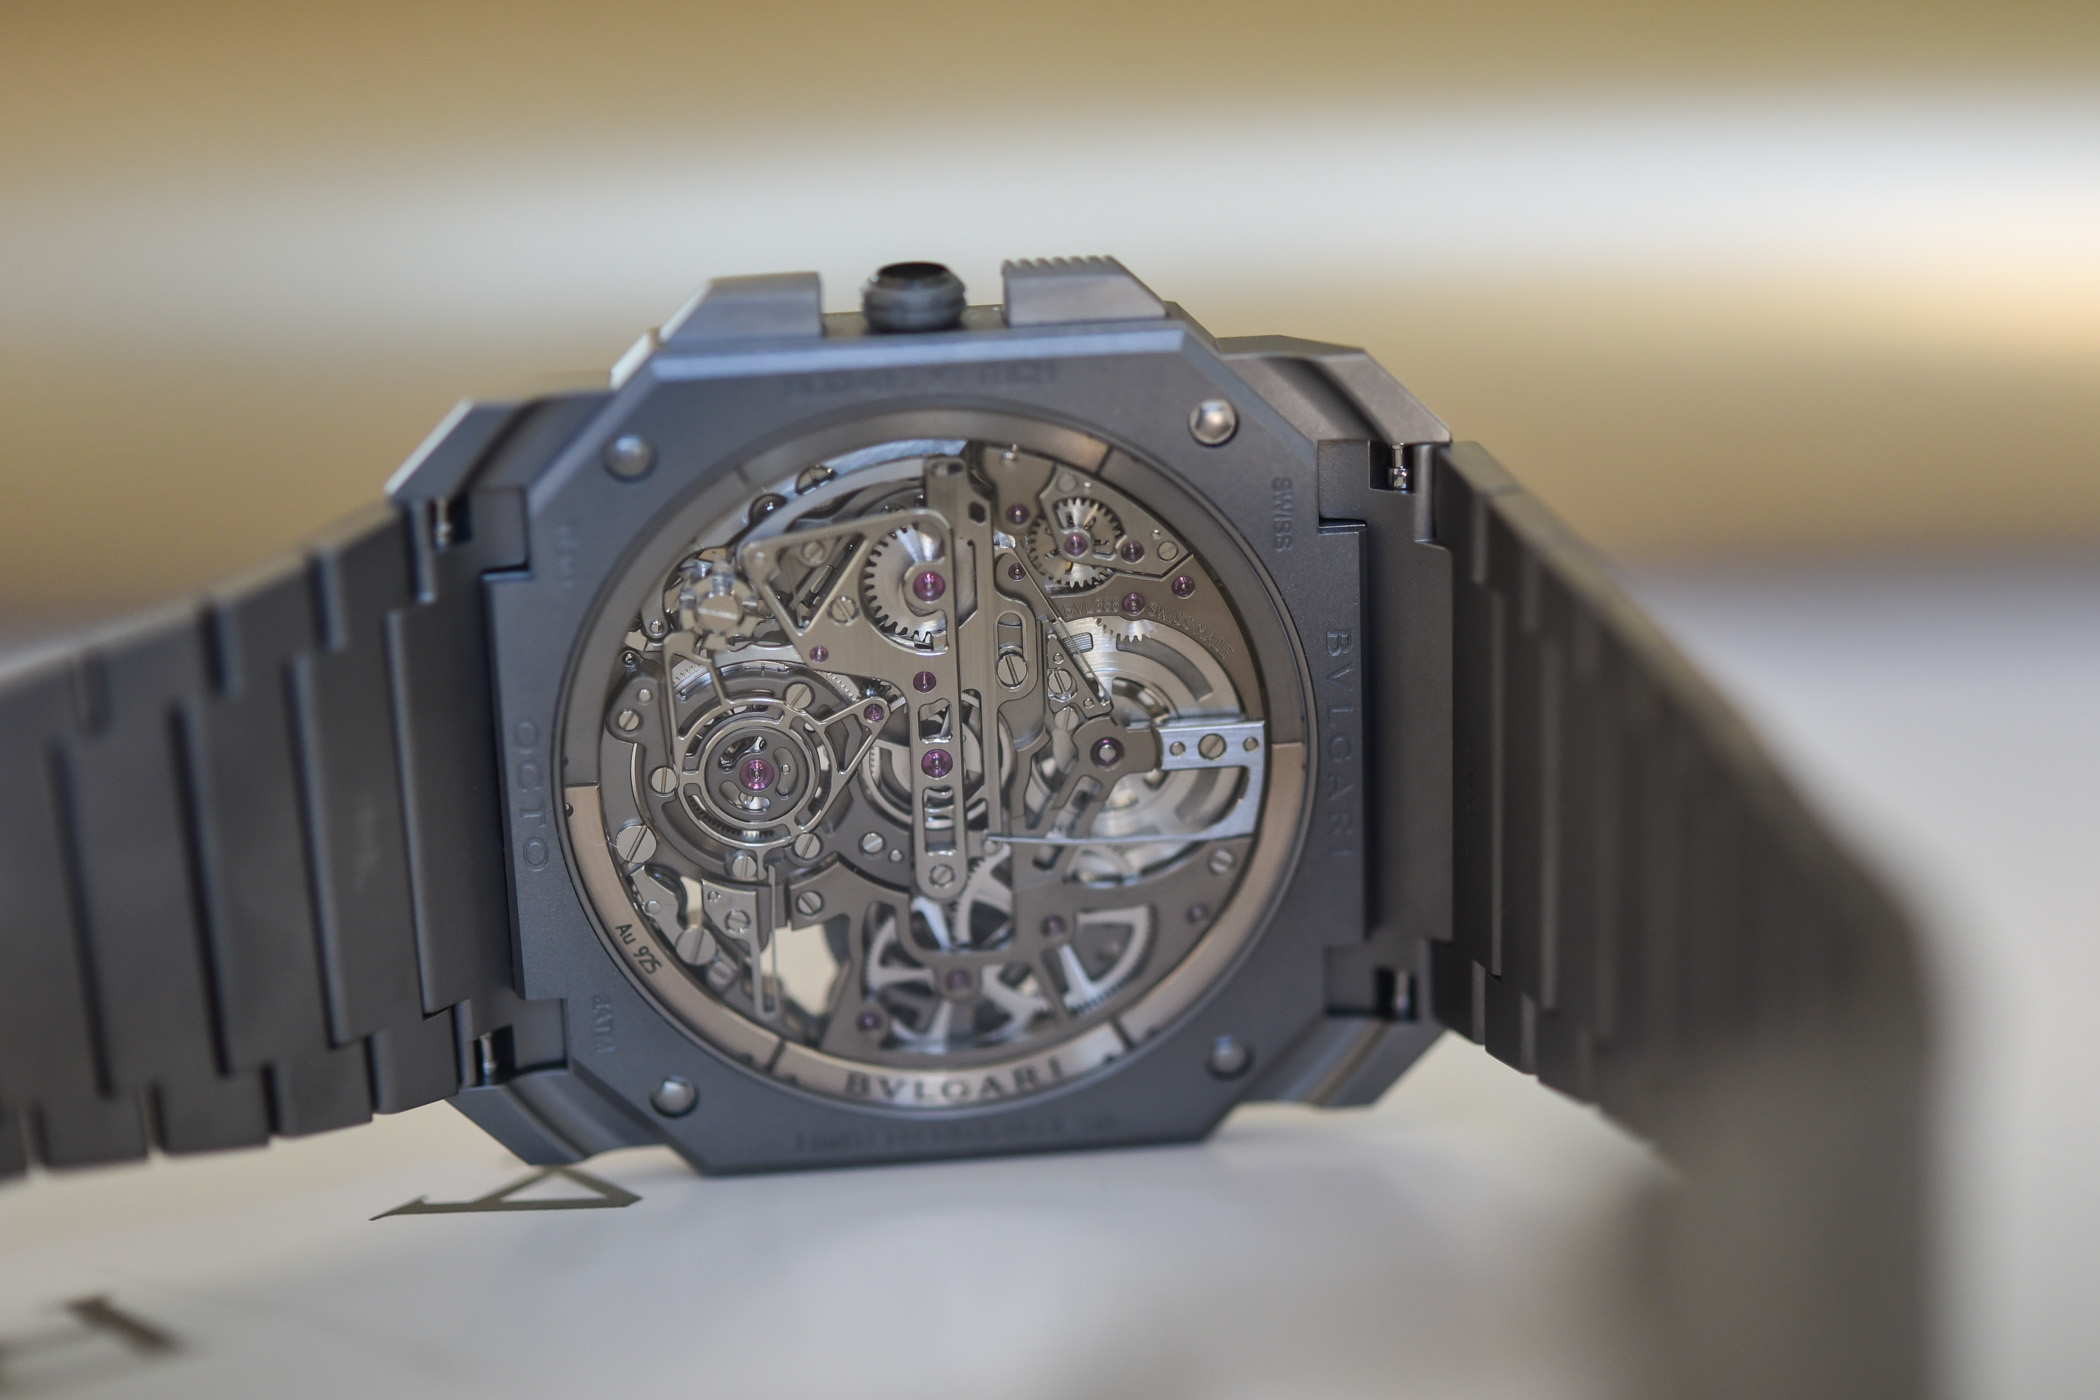 Bvlgari Octo Finissimo Tourbillon Chronograph Skeleton Automatic